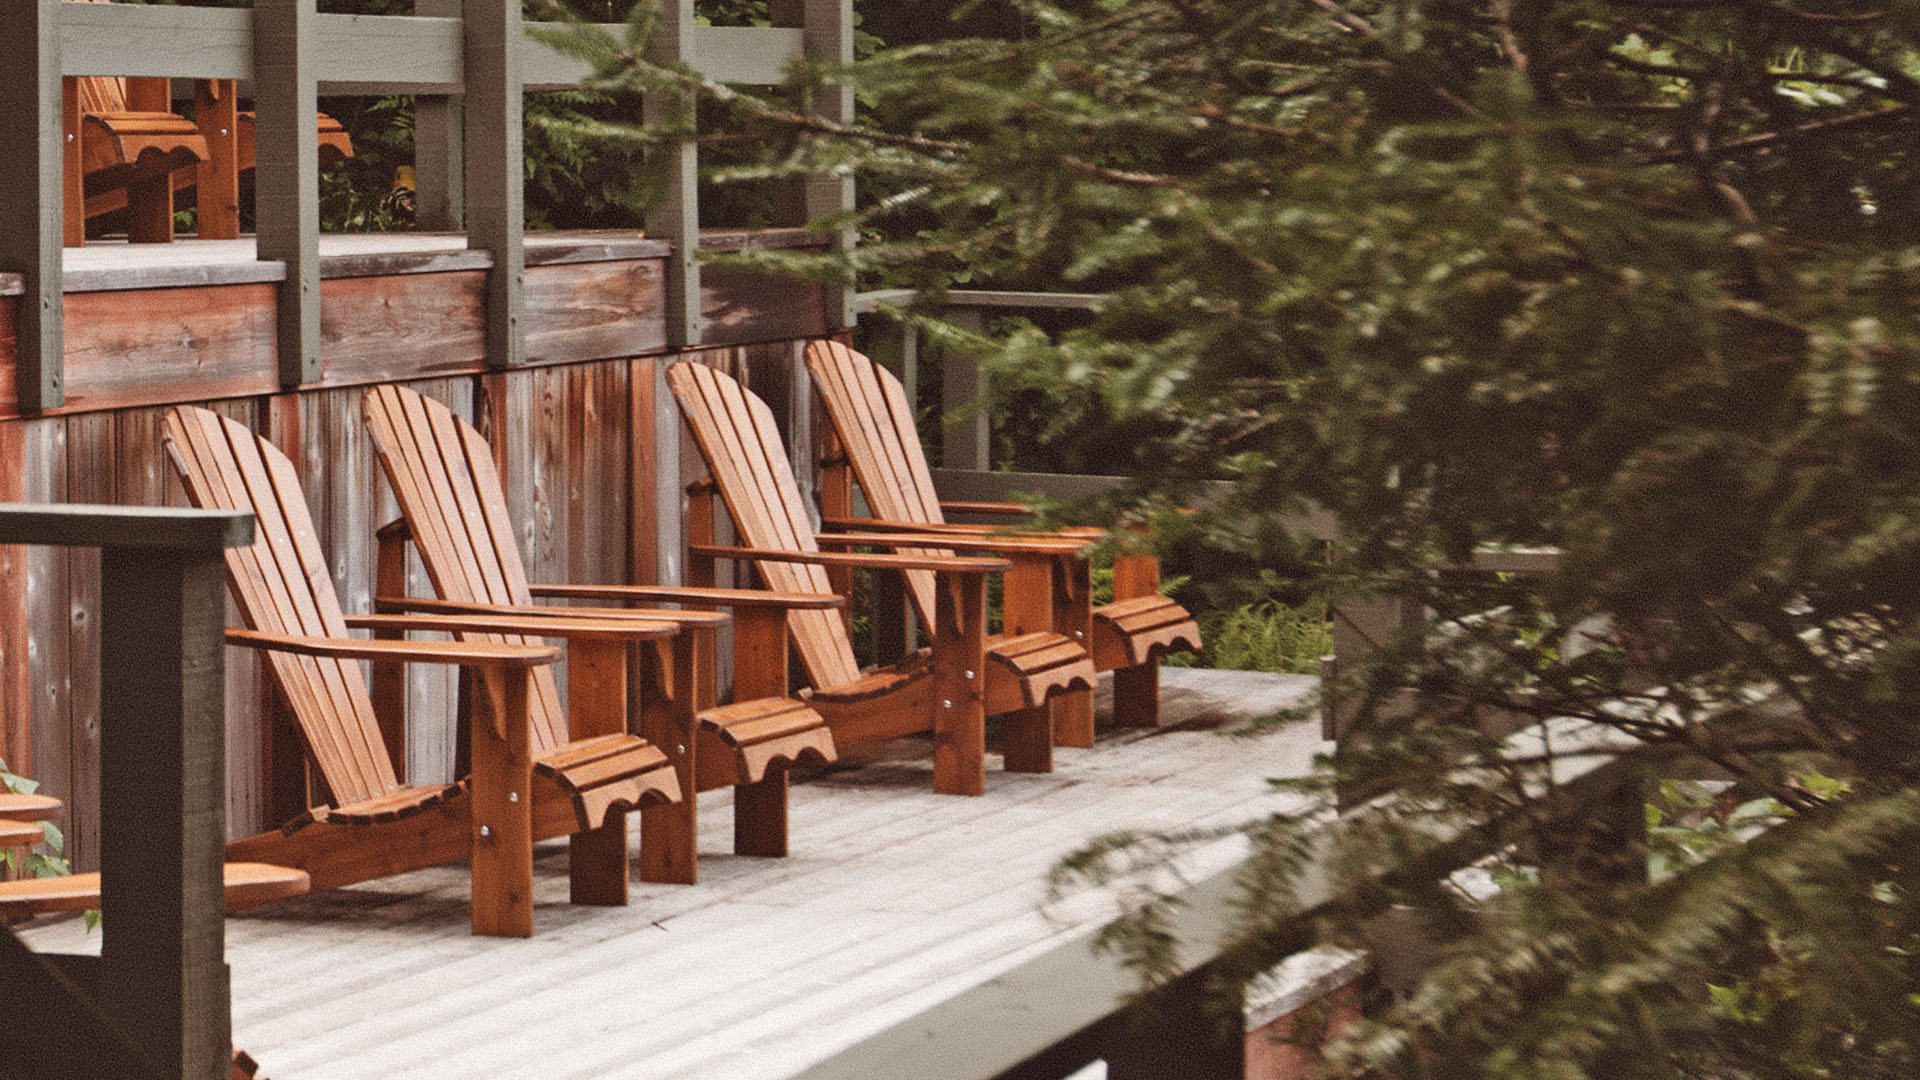 Open spaces on the outdoor terraces at Scandinave Spa Mont-Tremblant.